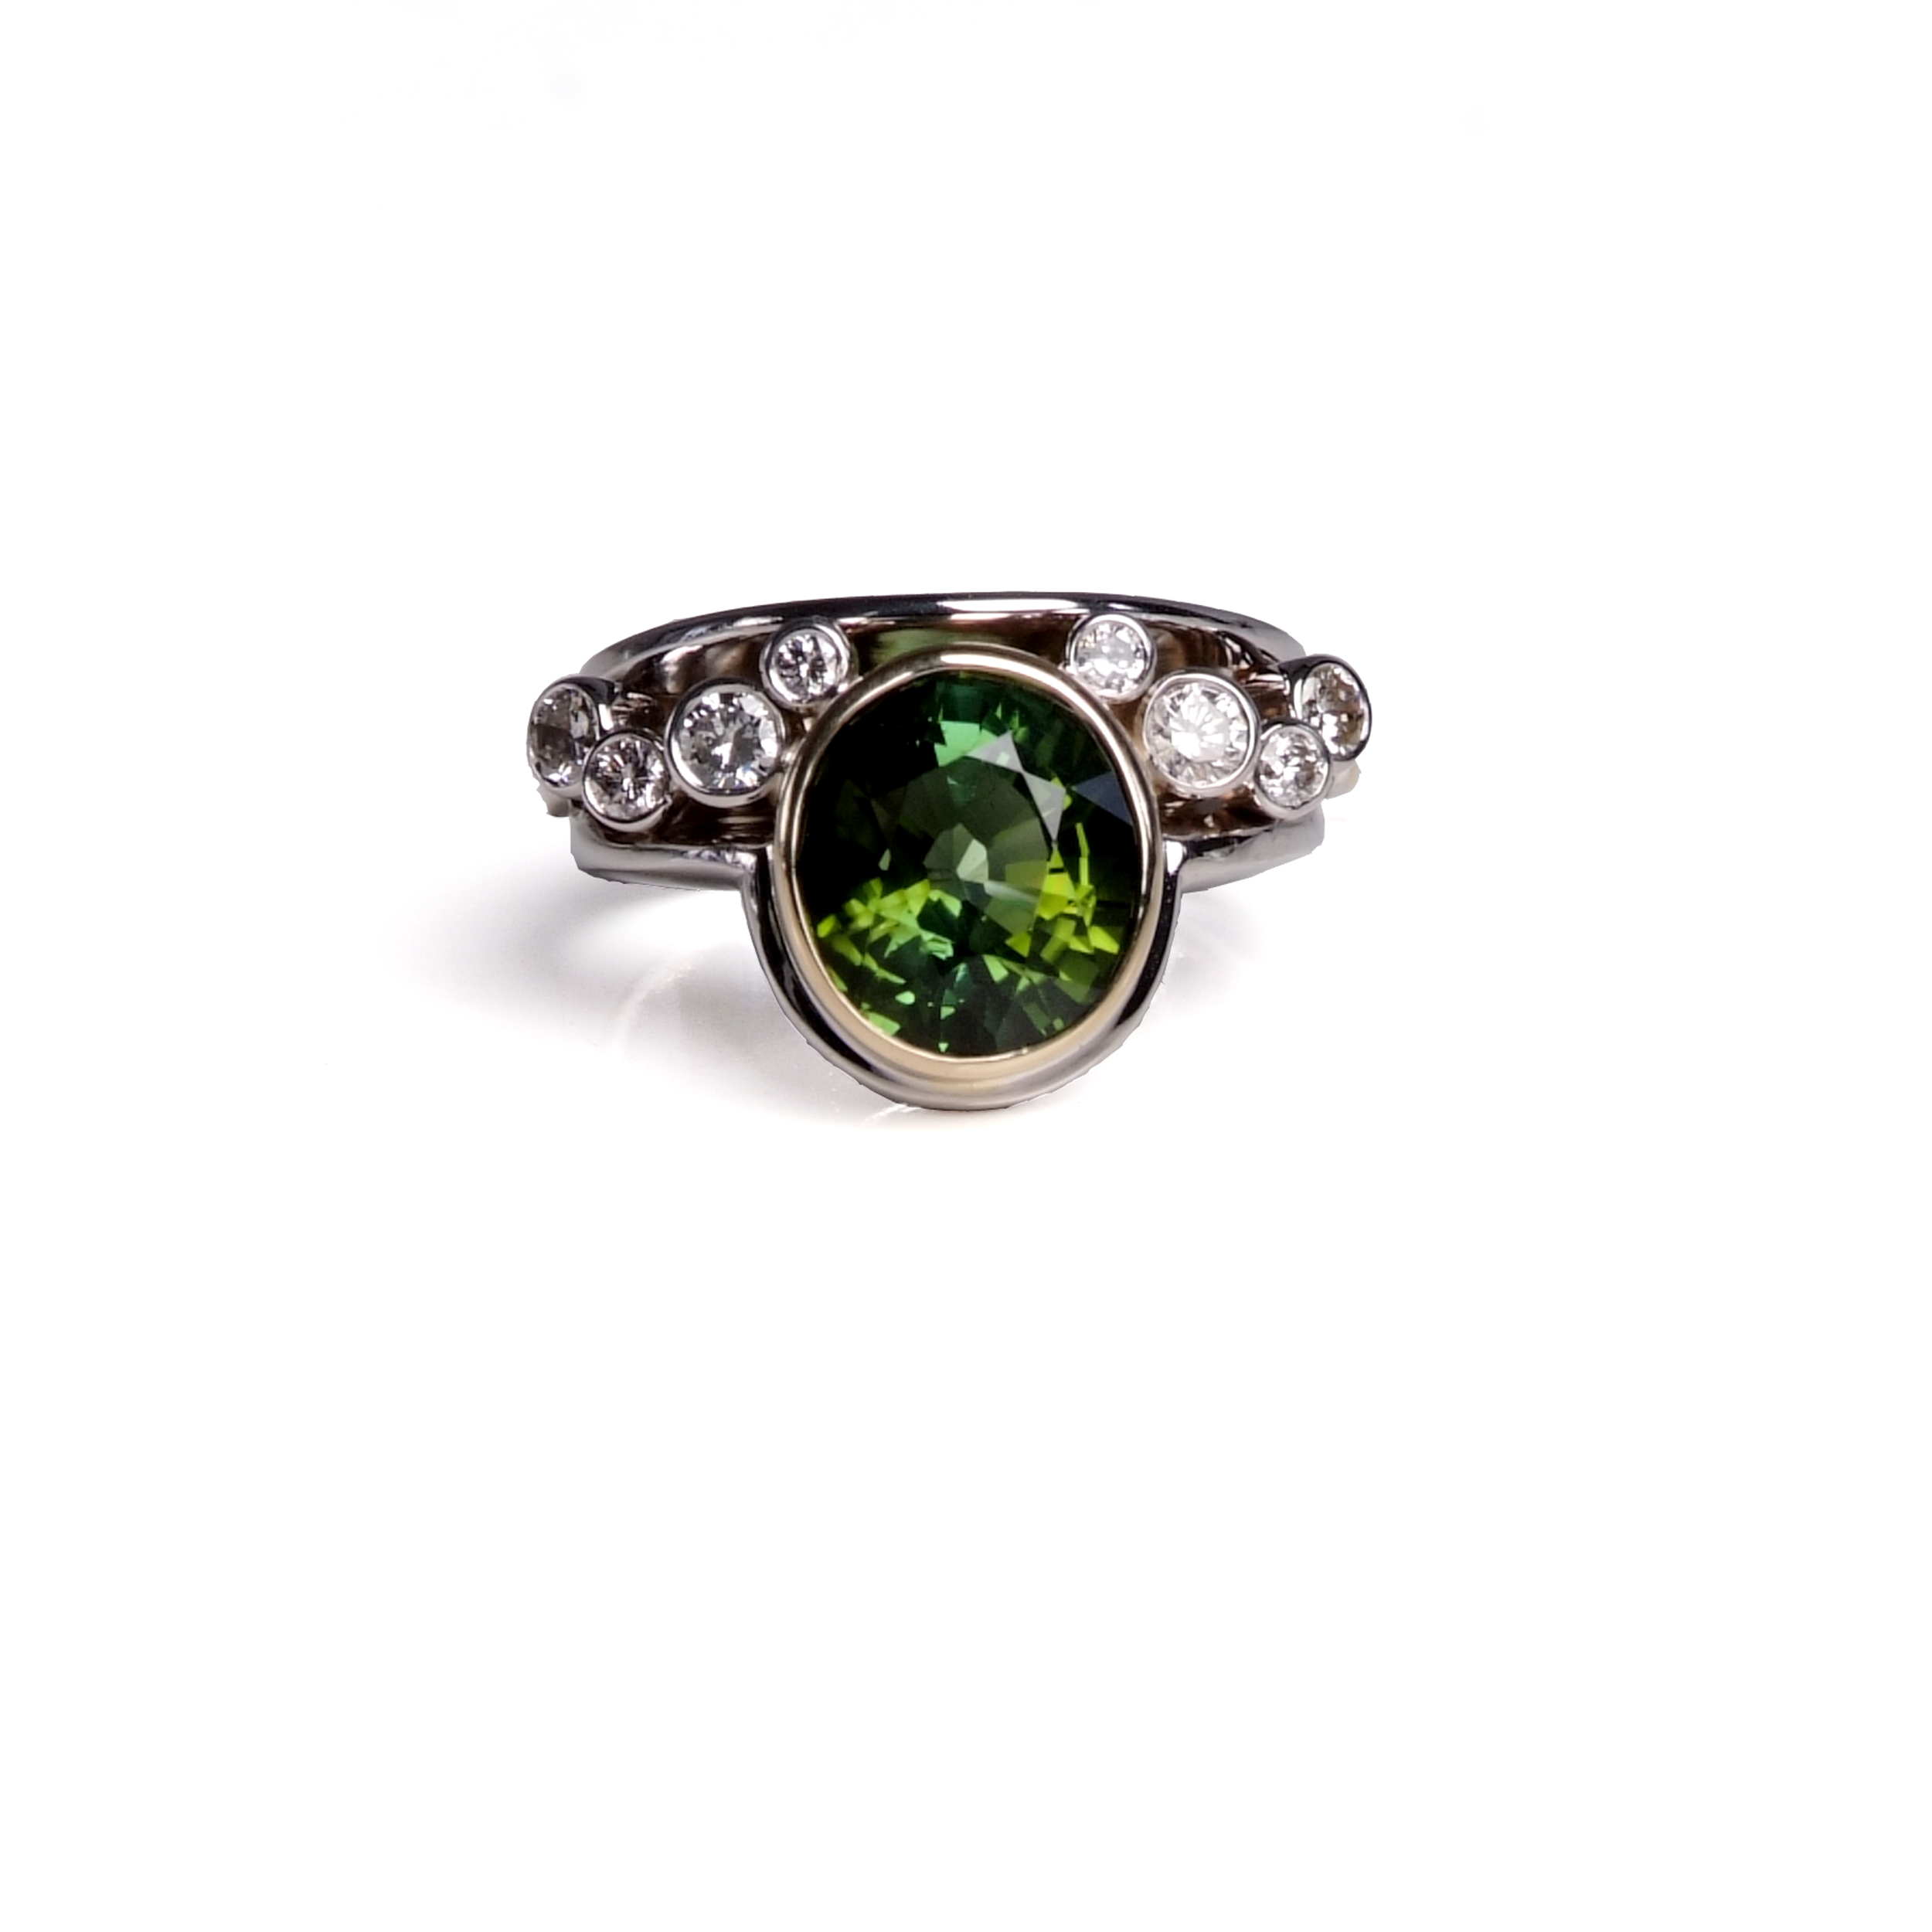 Craft-Revival Jewelers, tourmaline ring, green tourmaline ring, bezet set stones, bezel set ring